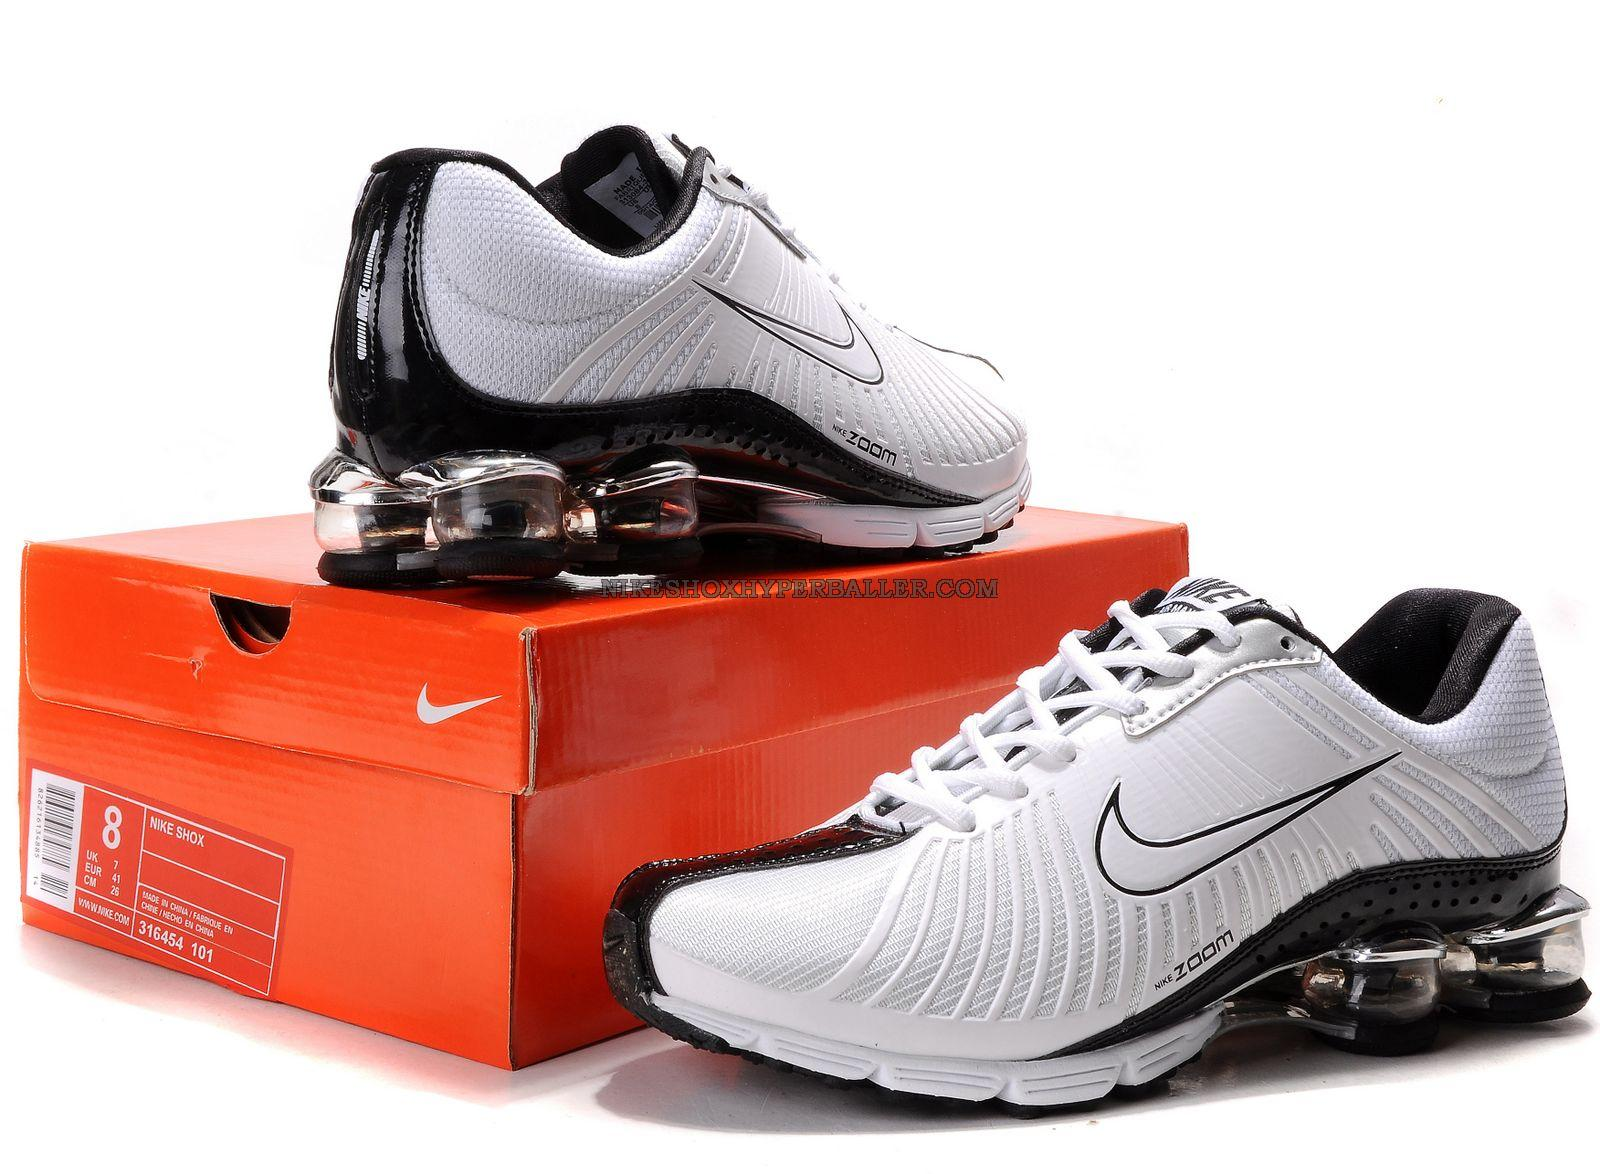 Nike Shox Shoes For Women